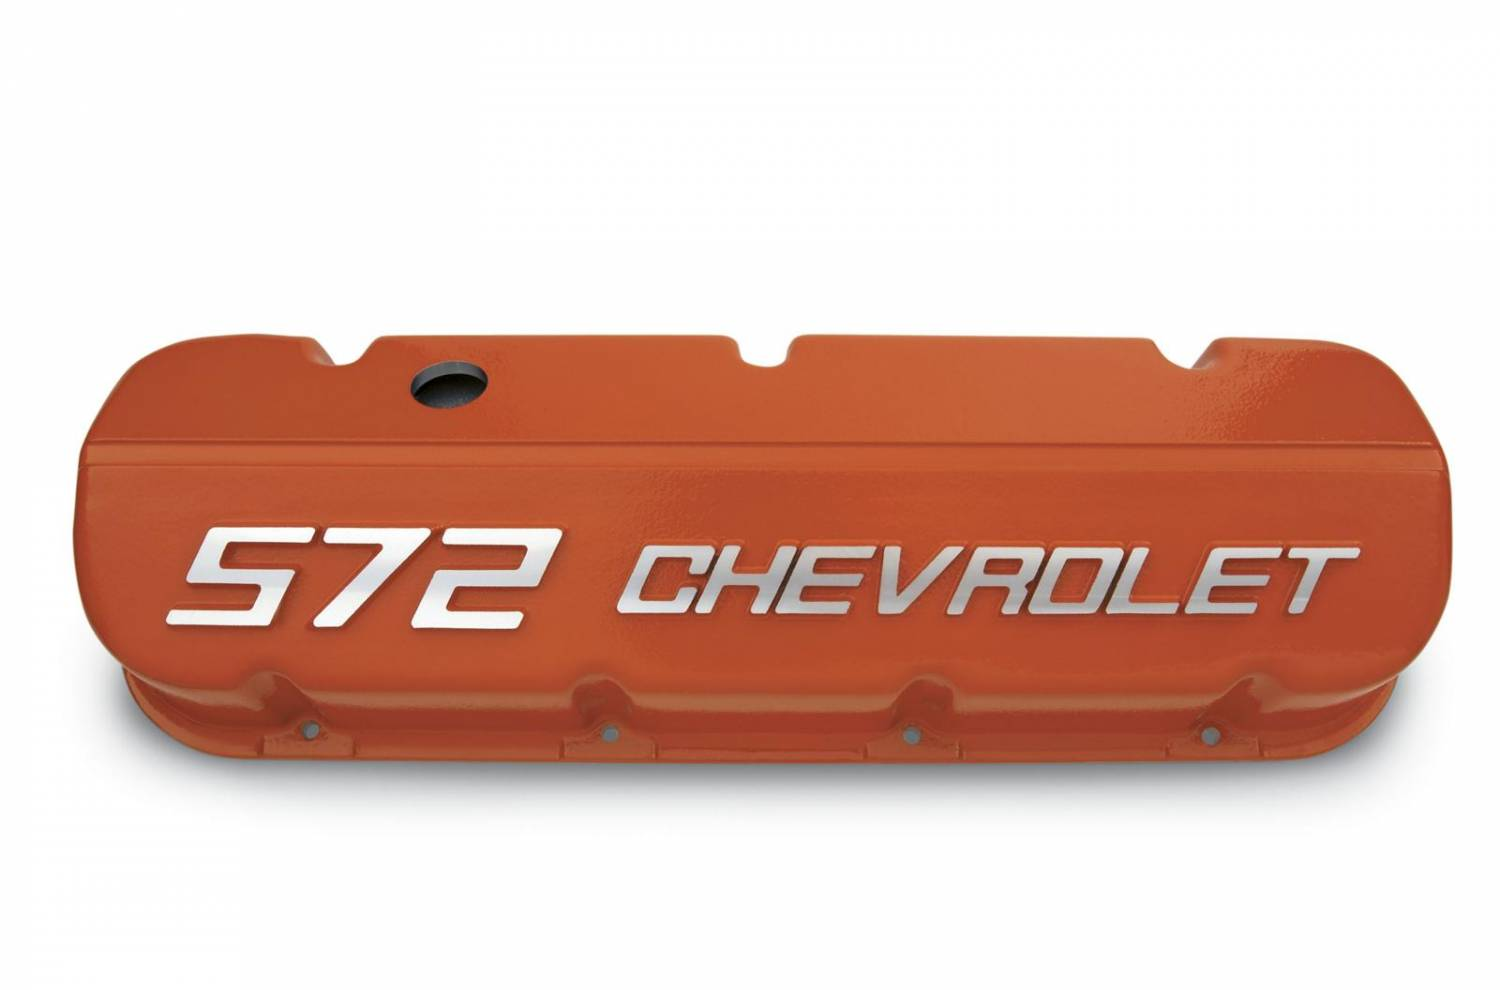 12499200 Cast Aluminum Valve Covers With 572 Chevrolet